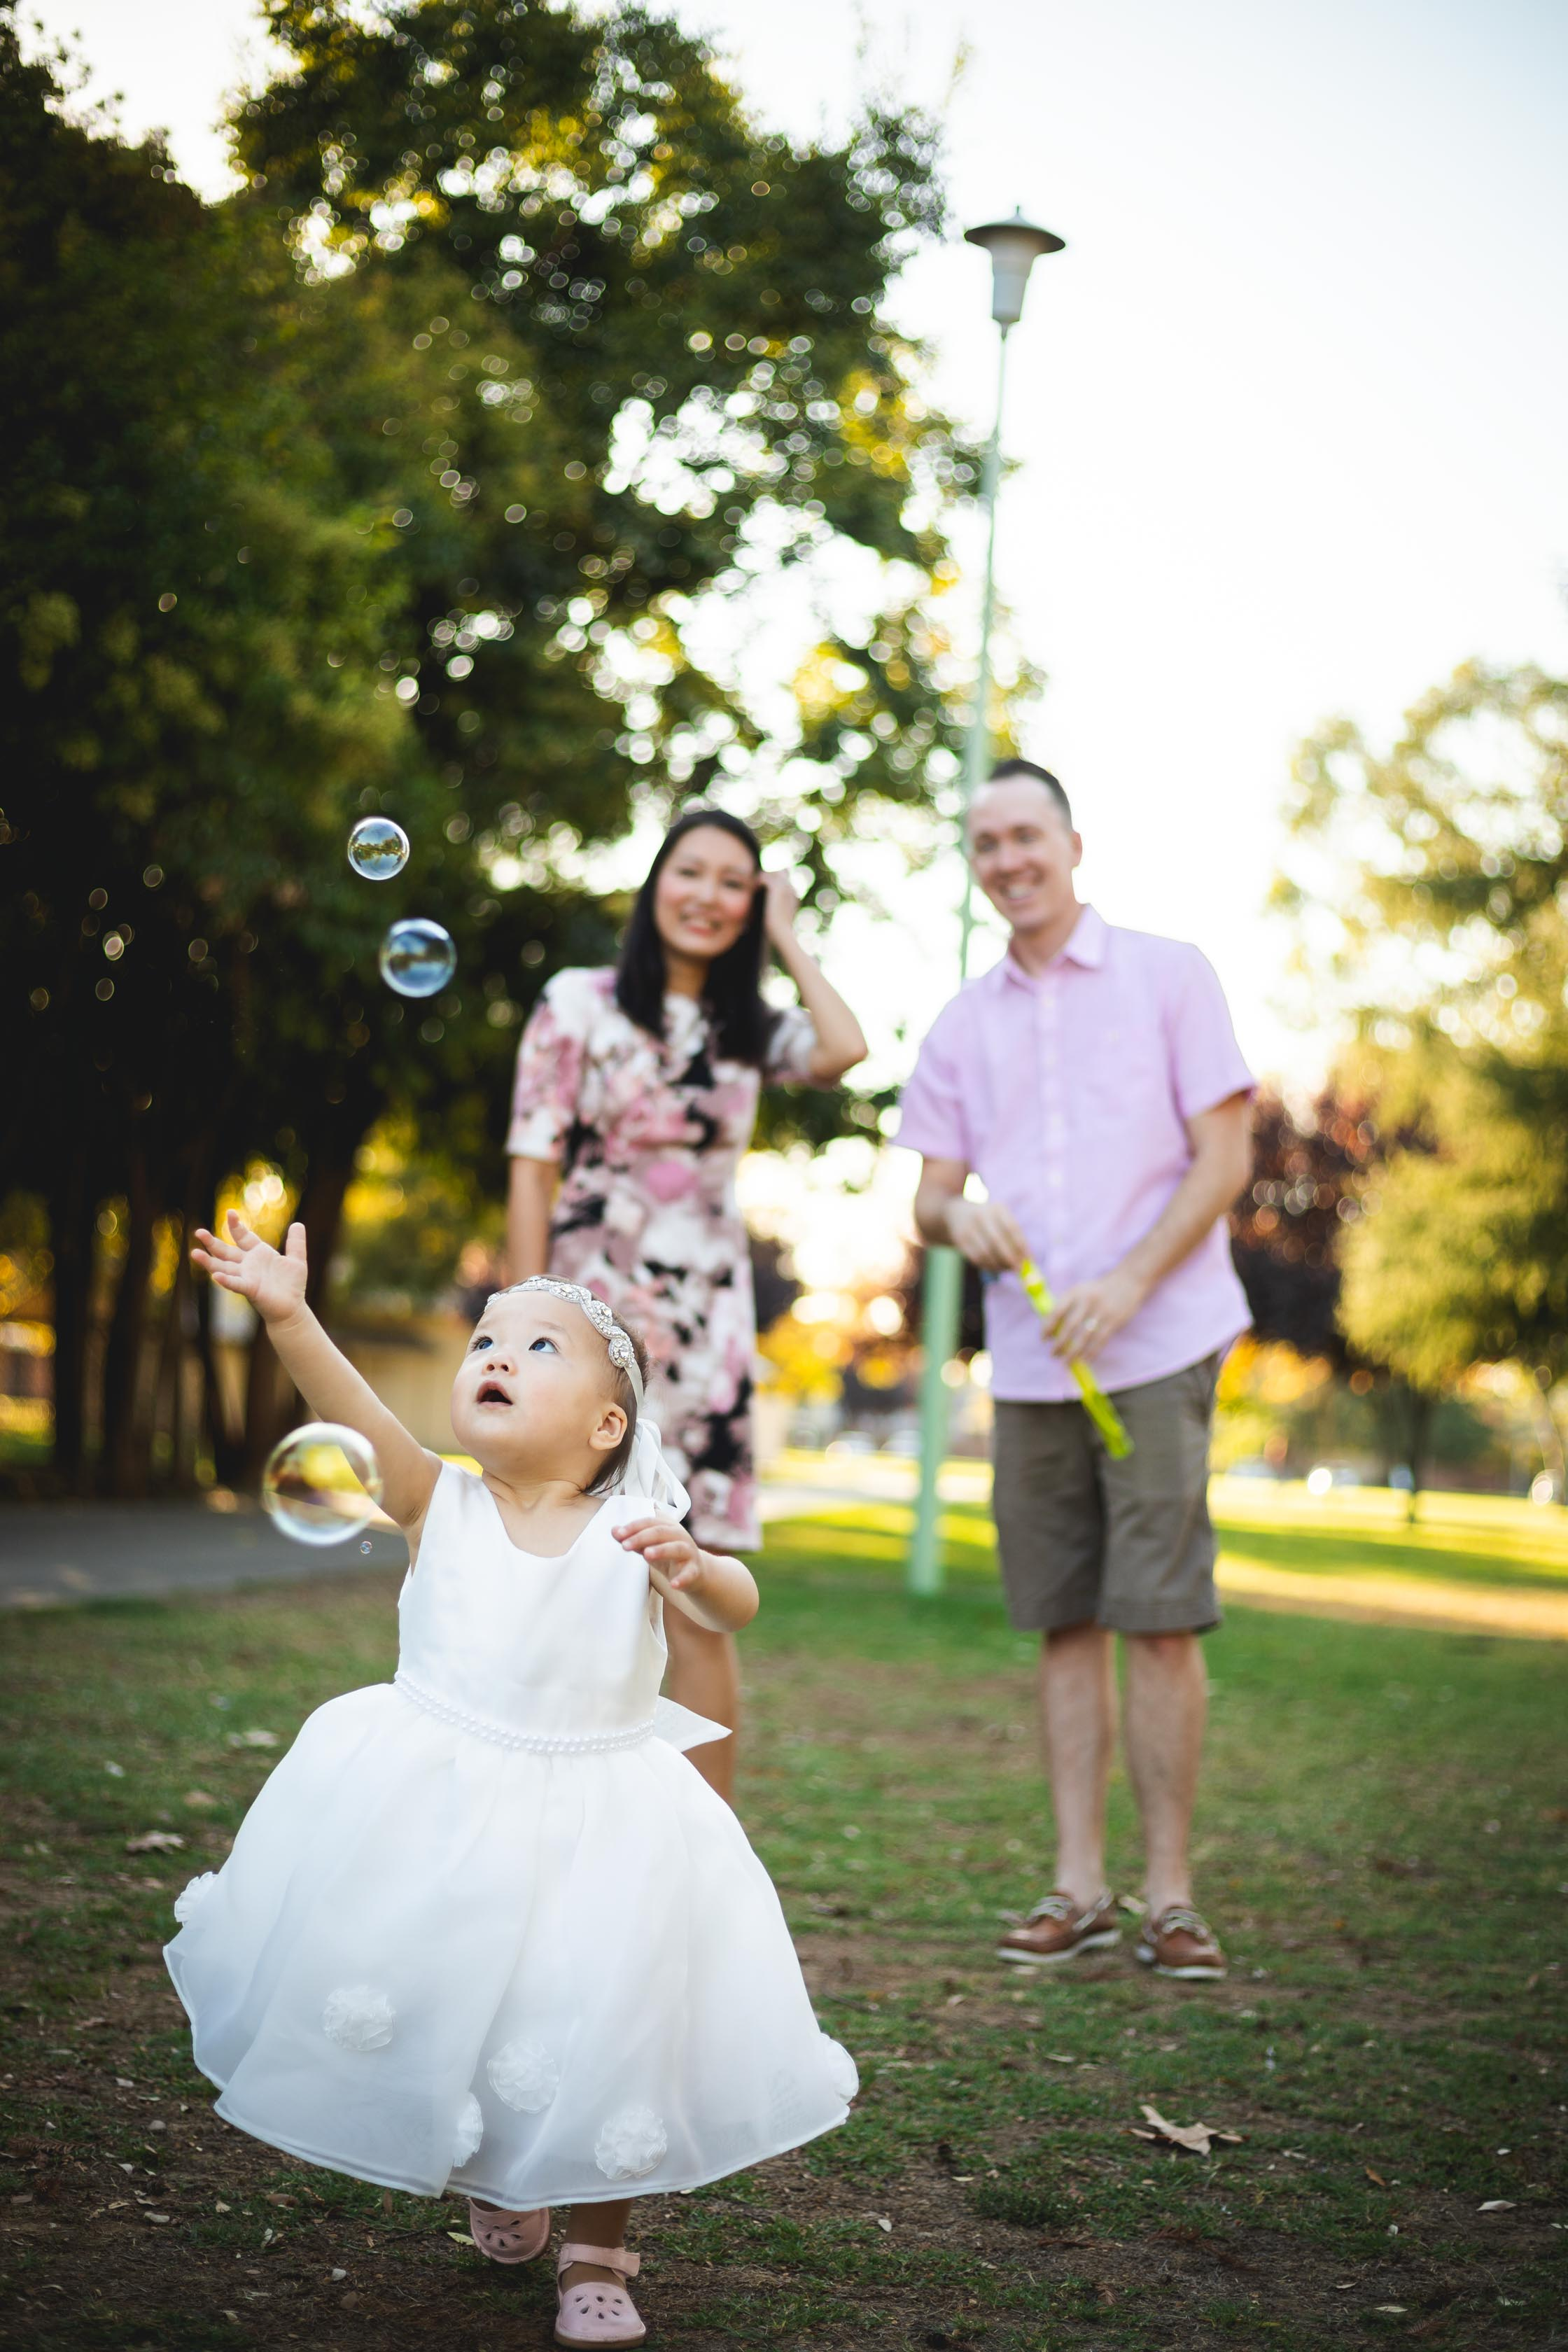 family photoshoot with baby chasing bubbles